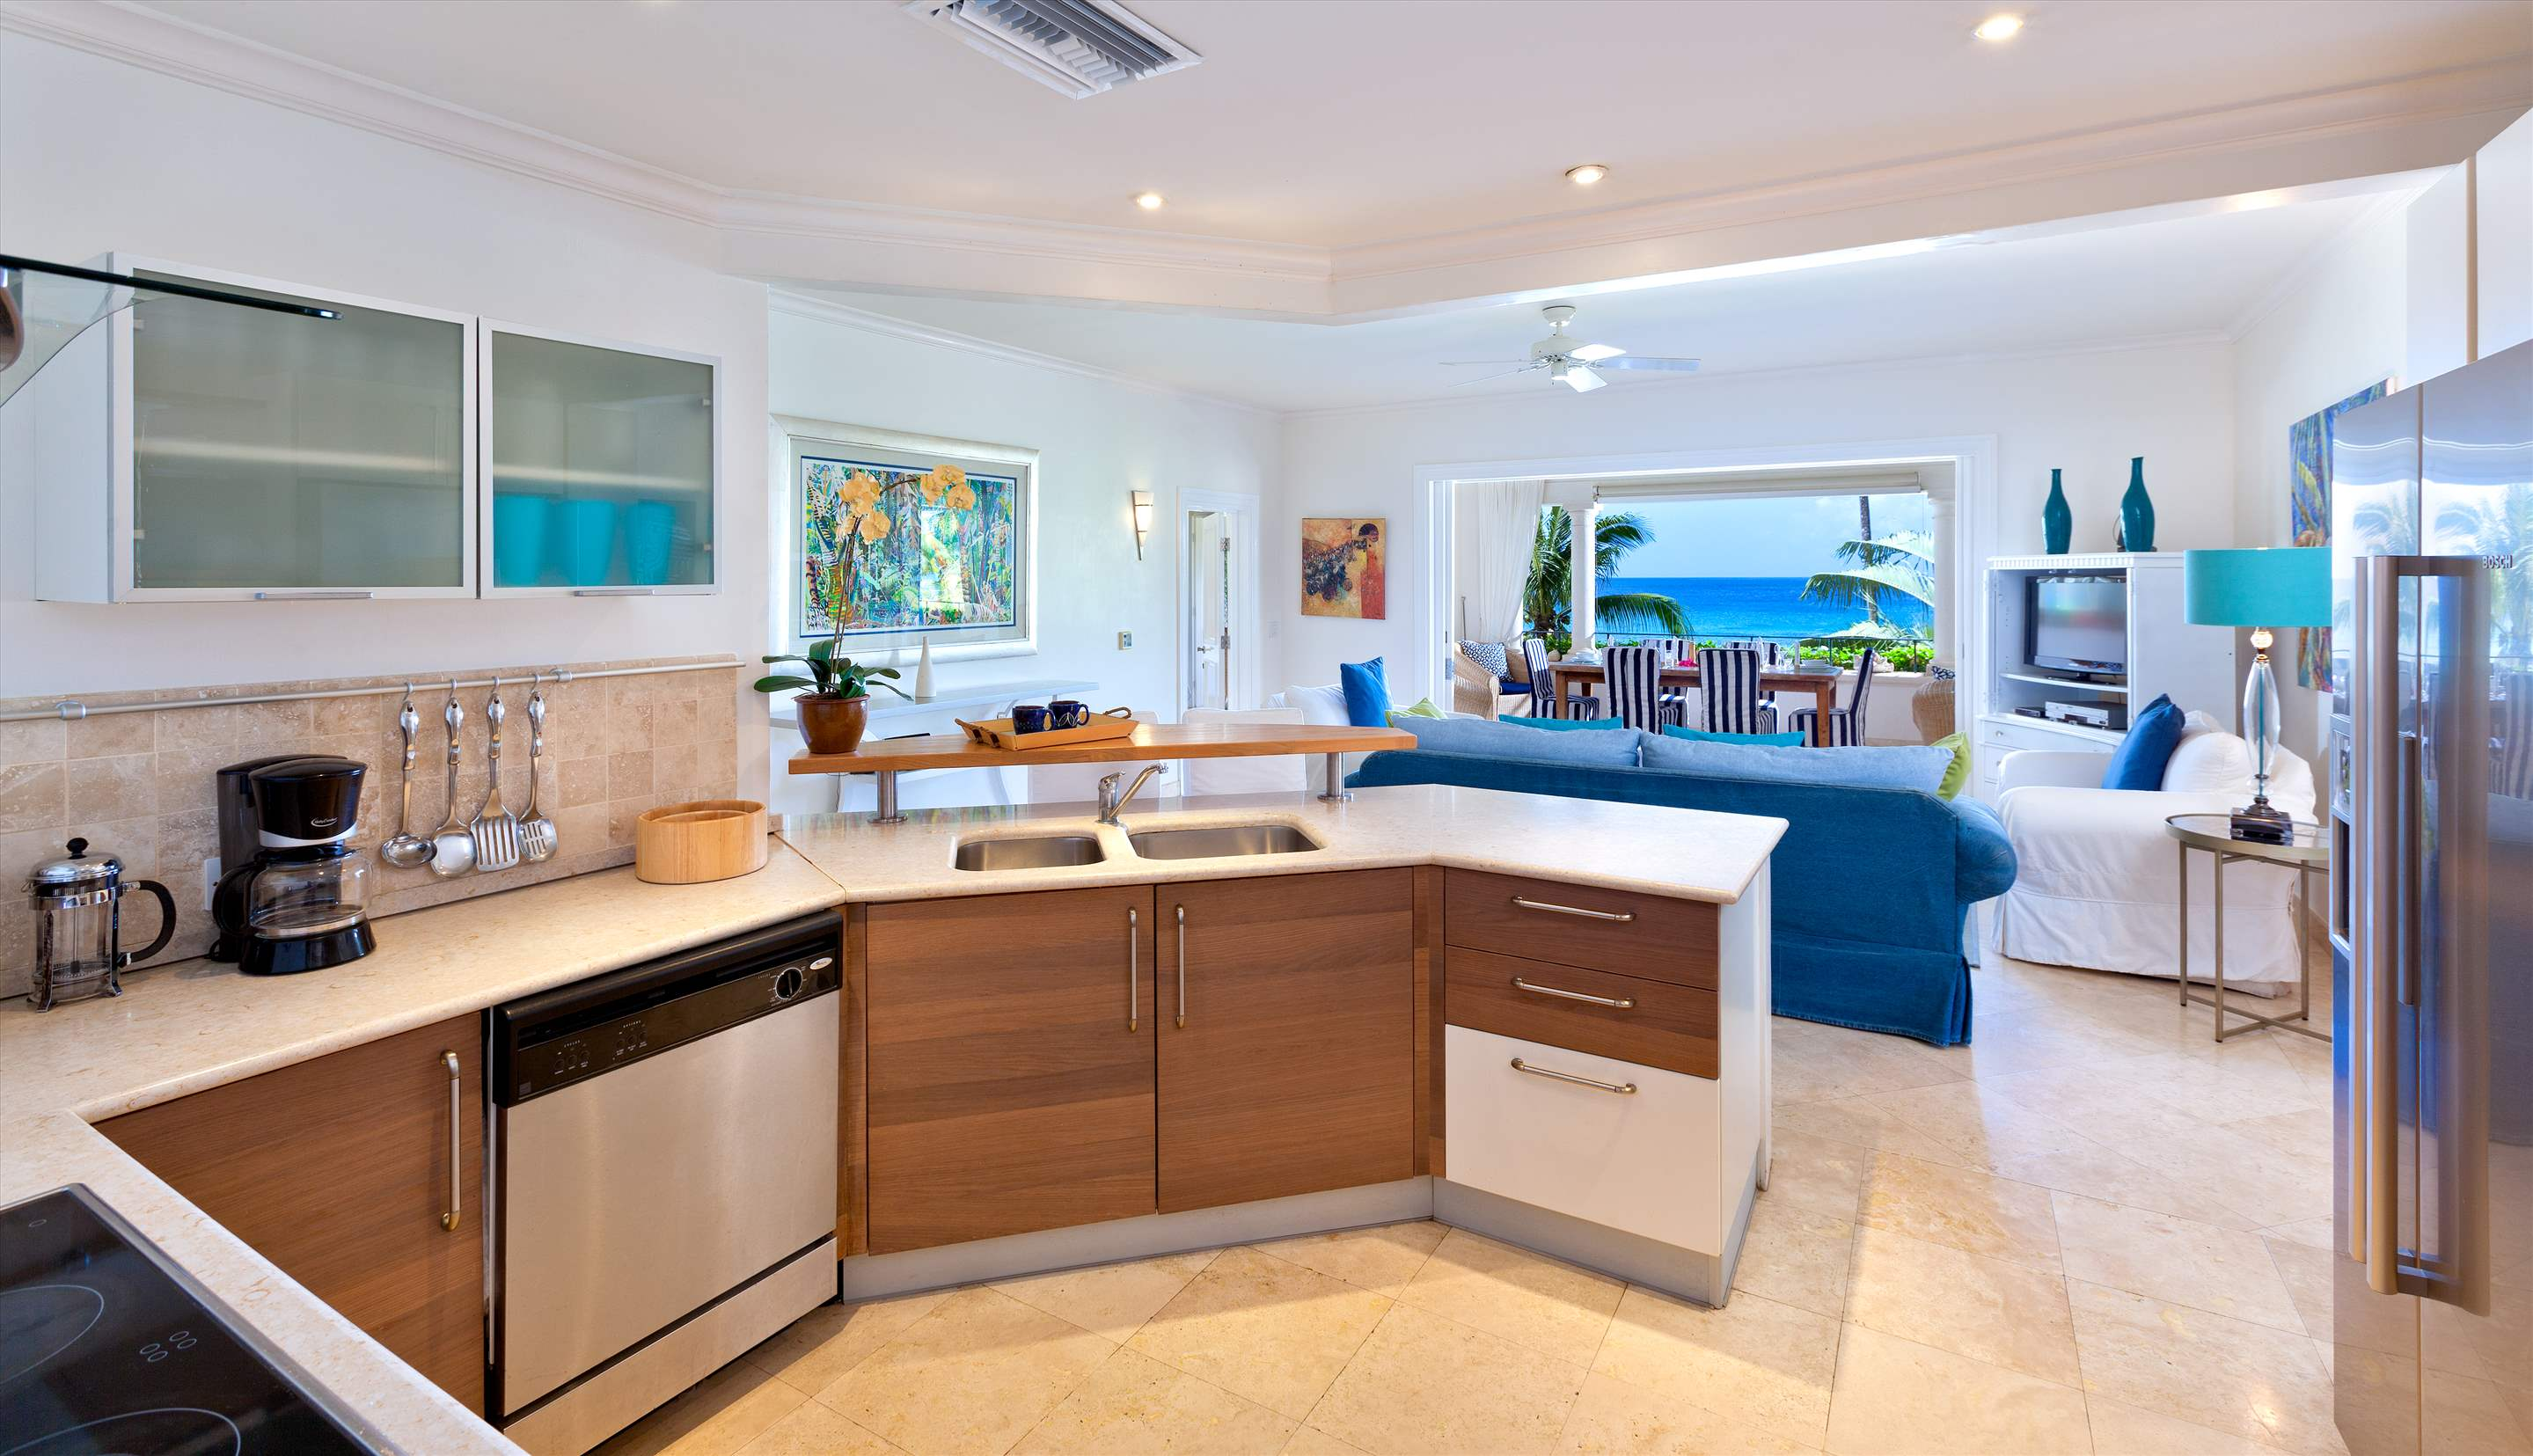 Schooner Bay 207, Two Bedroom Rate, 2 bedroom apartment in St. James & West Coast, Barbados Photo #4